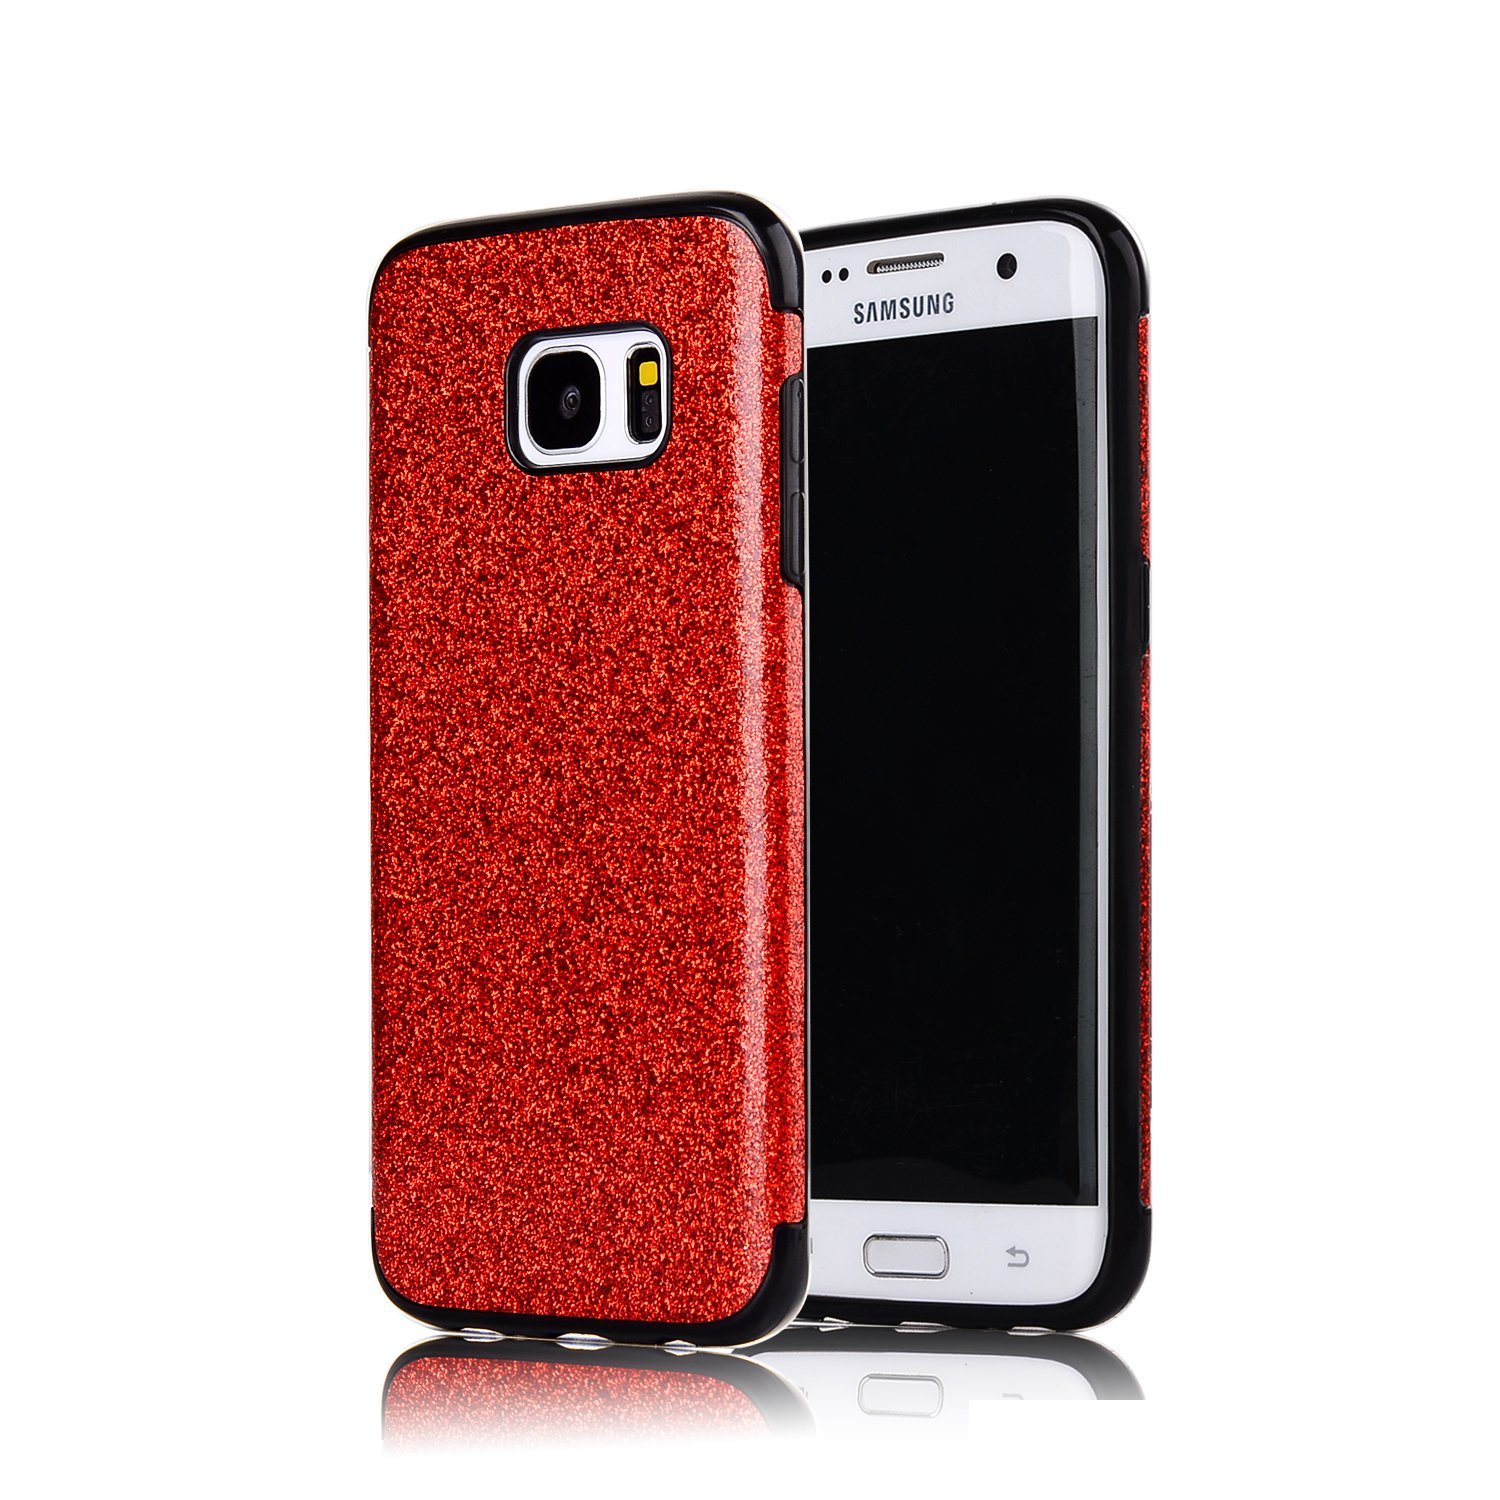 Sycode Silicone Coque pour Galaxy S6 Edge,Glitter Coque pour Galaxy S6 Edge,Luxe Strass Bling Très Mince Housse Etui pour Samsung Galaxy S6 Edge-Rose Or